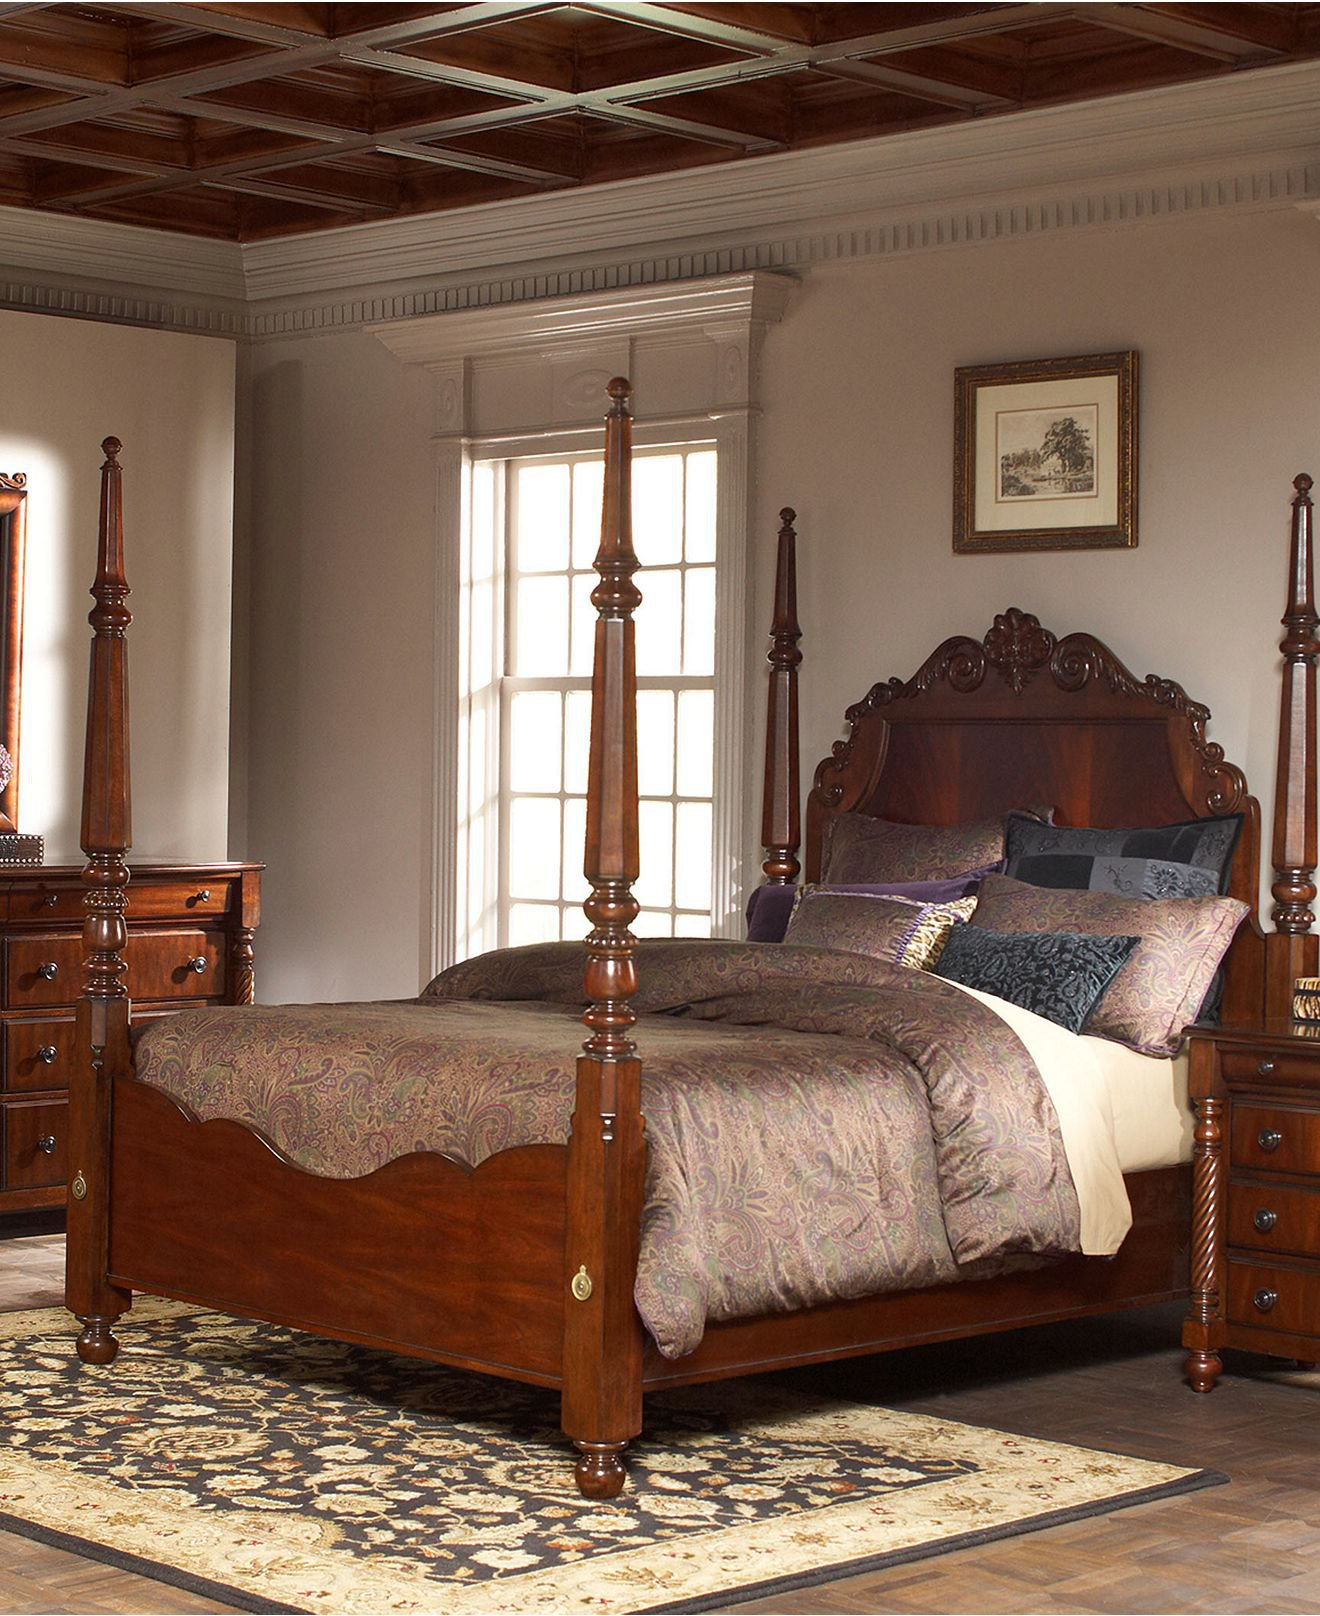 Lauren ralph lauren bedroom furniture from macy 39 s the house Ralph lauren home bedroom furniture